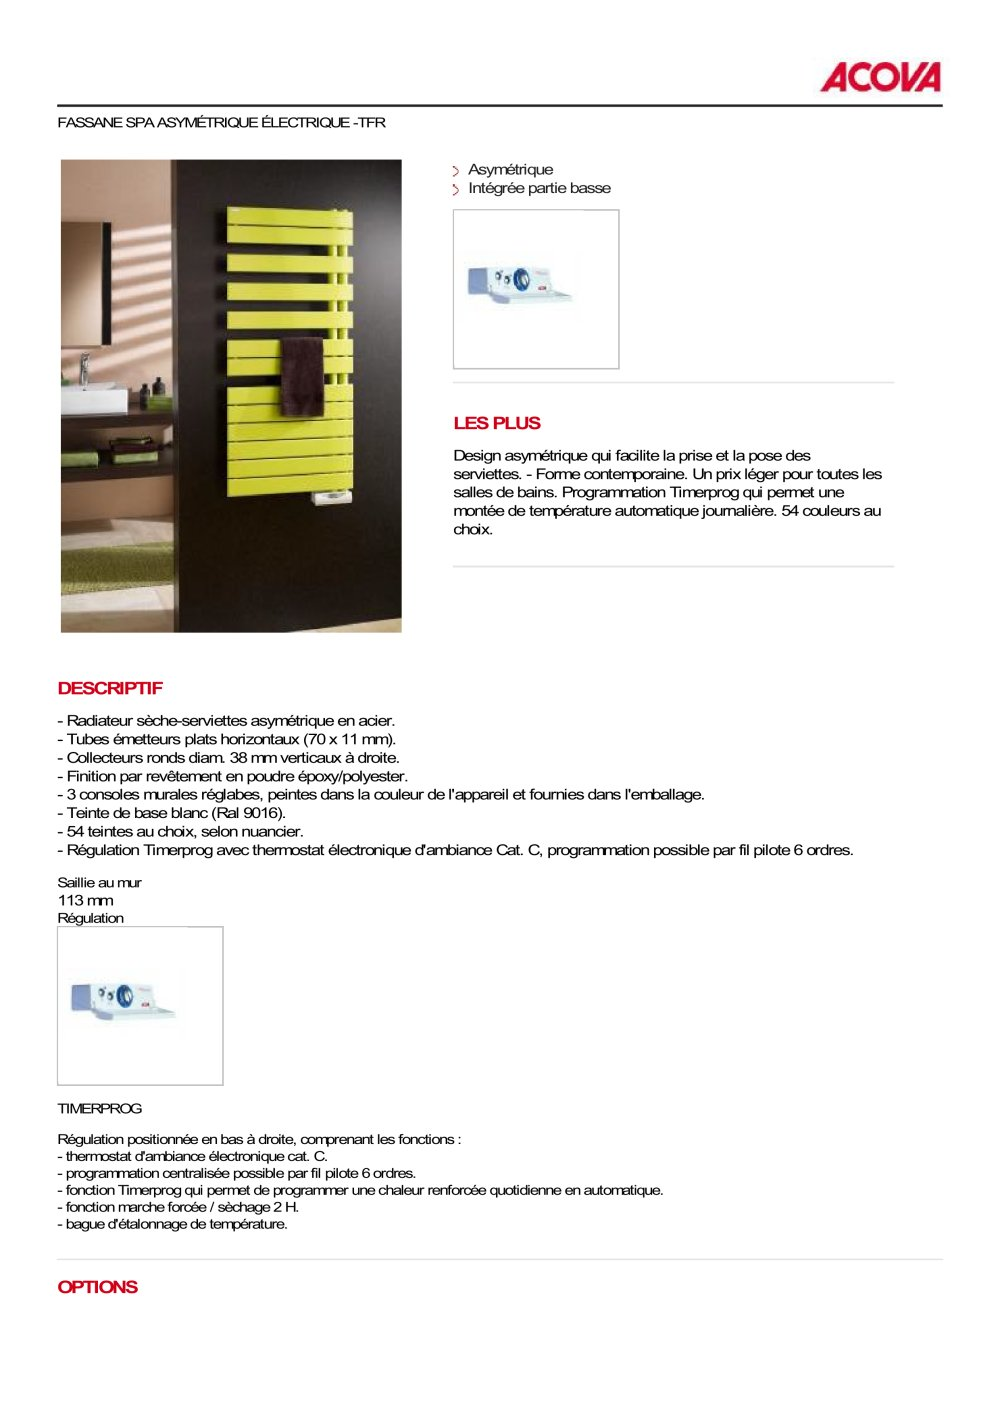 FASSANE SPA - ACOVA - PDF Catalogues   Documentation   Brochures 3552b60b1c1f